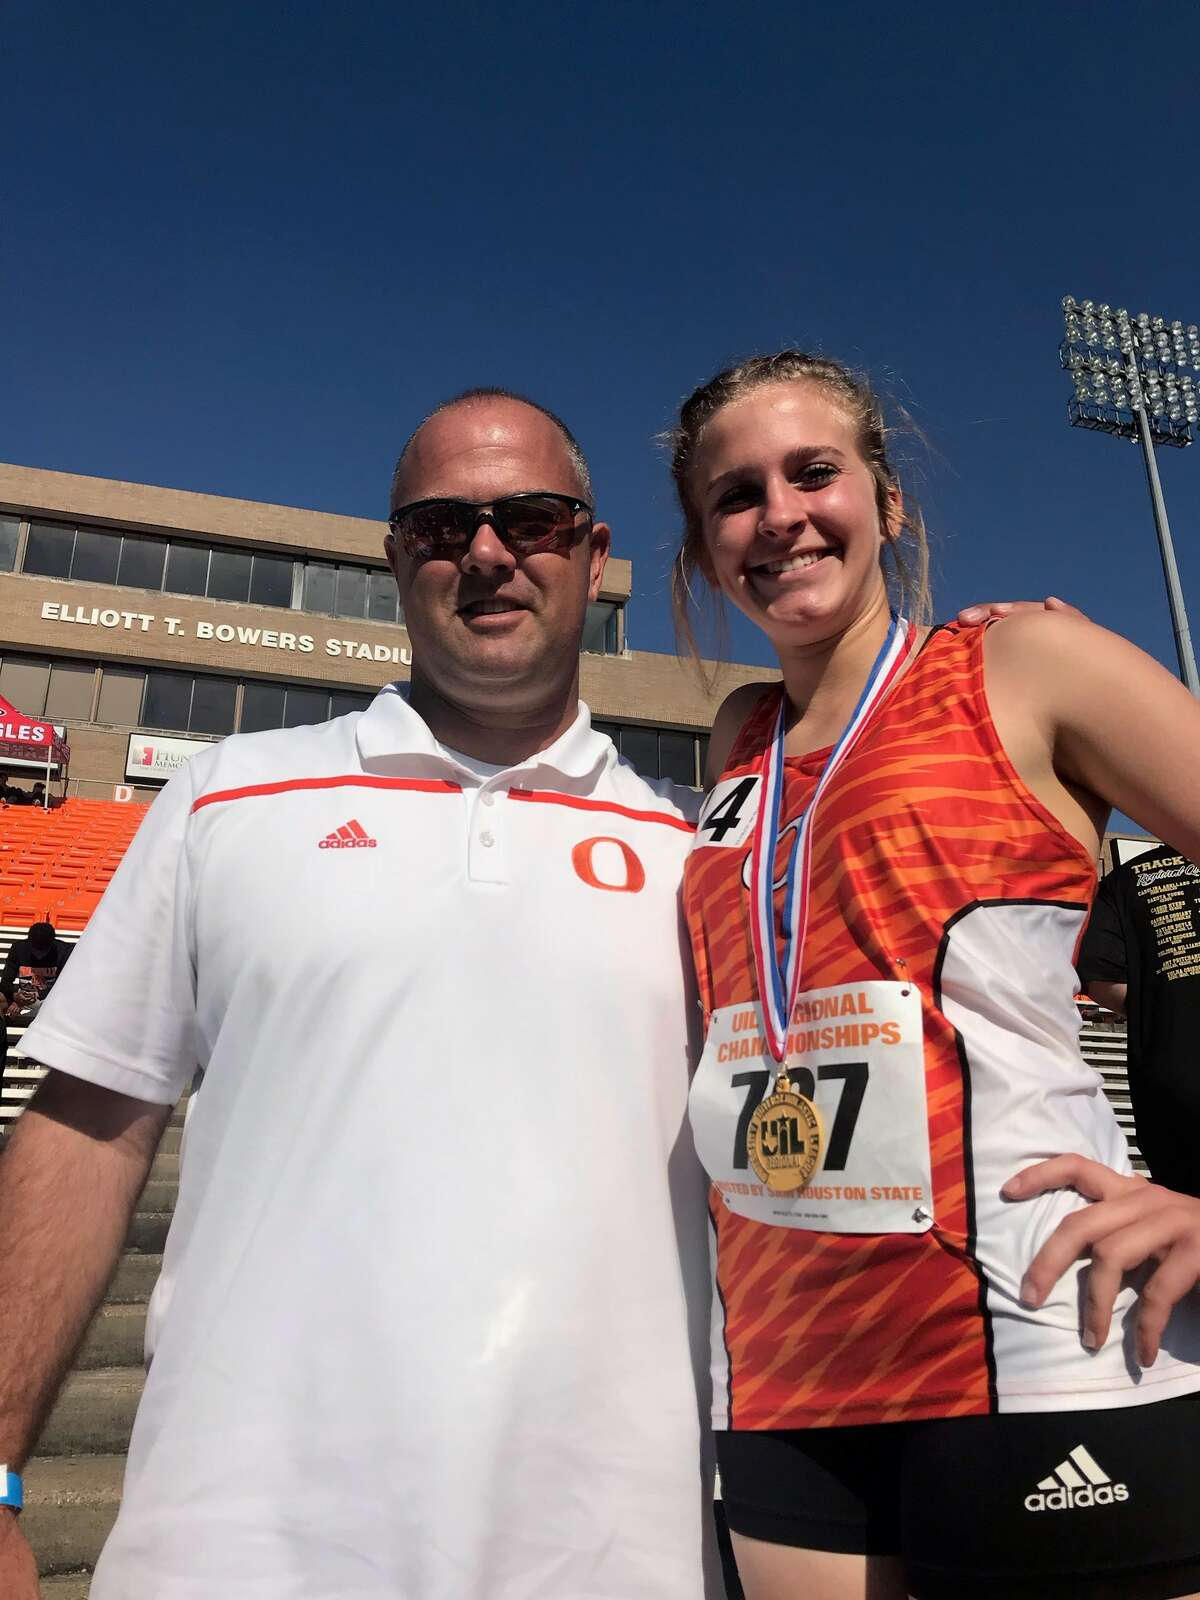 Orangefield's Maddison Helm, right, with the school's athletic director Josh Smalley after winning gold in the 3,200-meter race at the 4A regional track and field meet at Bowers Stadium in Huntsville. (Photo provided by Josh Smalley)